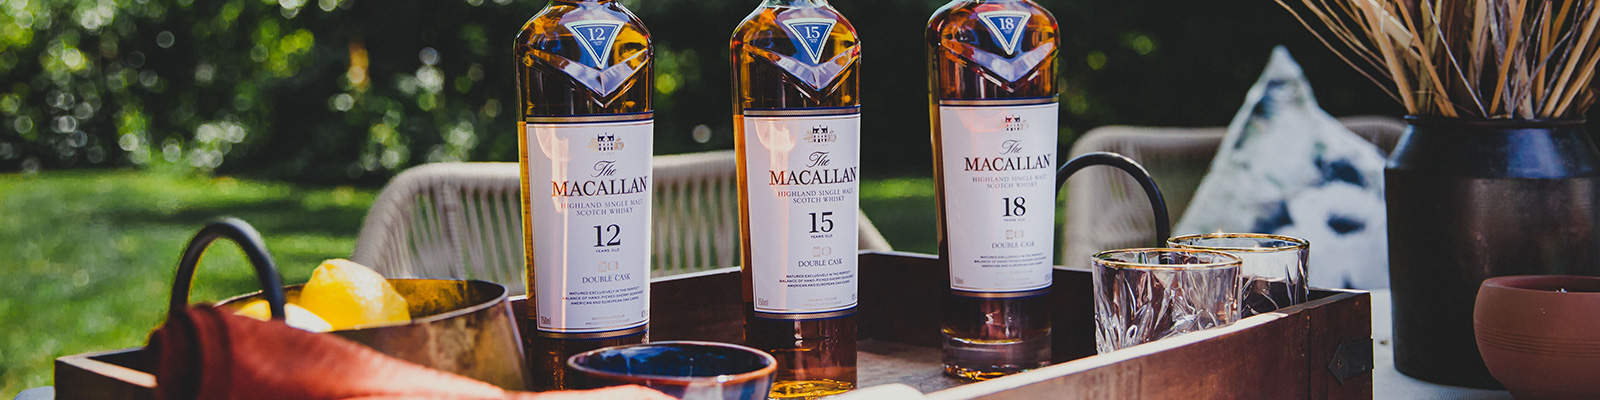 The Macallan Double Cask Collection